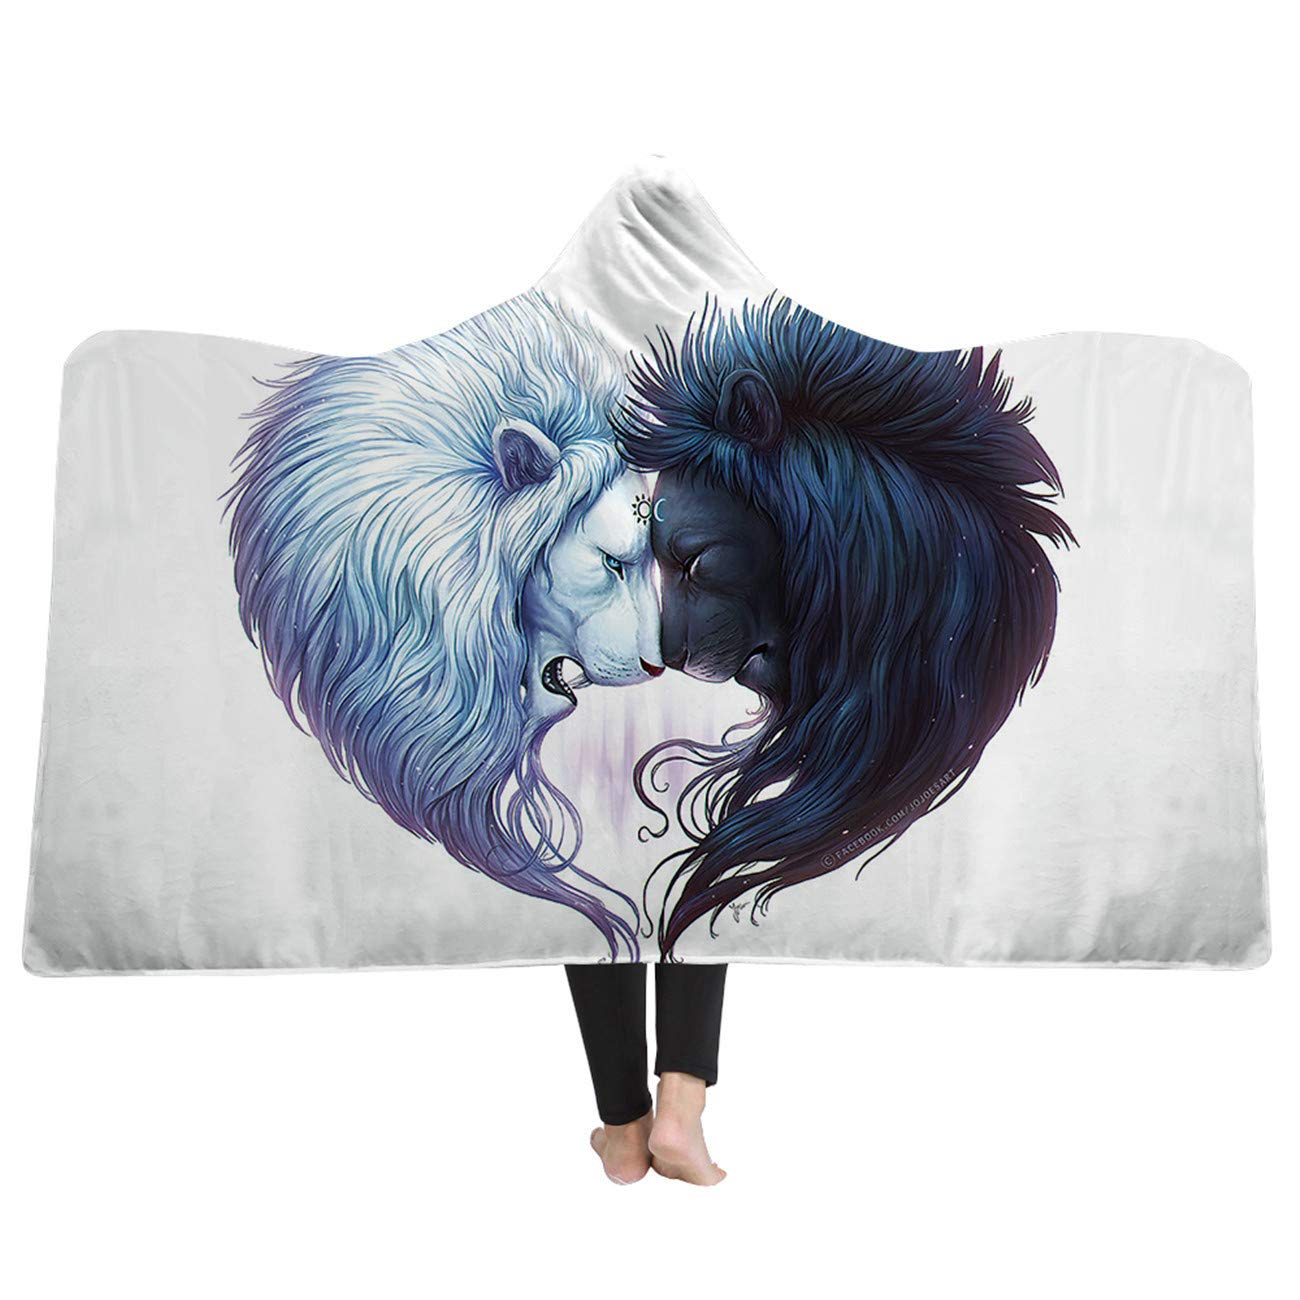 lwfushi 3D Animal Hooded Blanket Wolf Tiger Lion Lifelike Pattern Blanket Super Soft Sherpa Fleece Blankets Warm Wearable Blankets Kids and Adults Cozy Blankets (Adults 59''x 79'' inch) by AMTAN